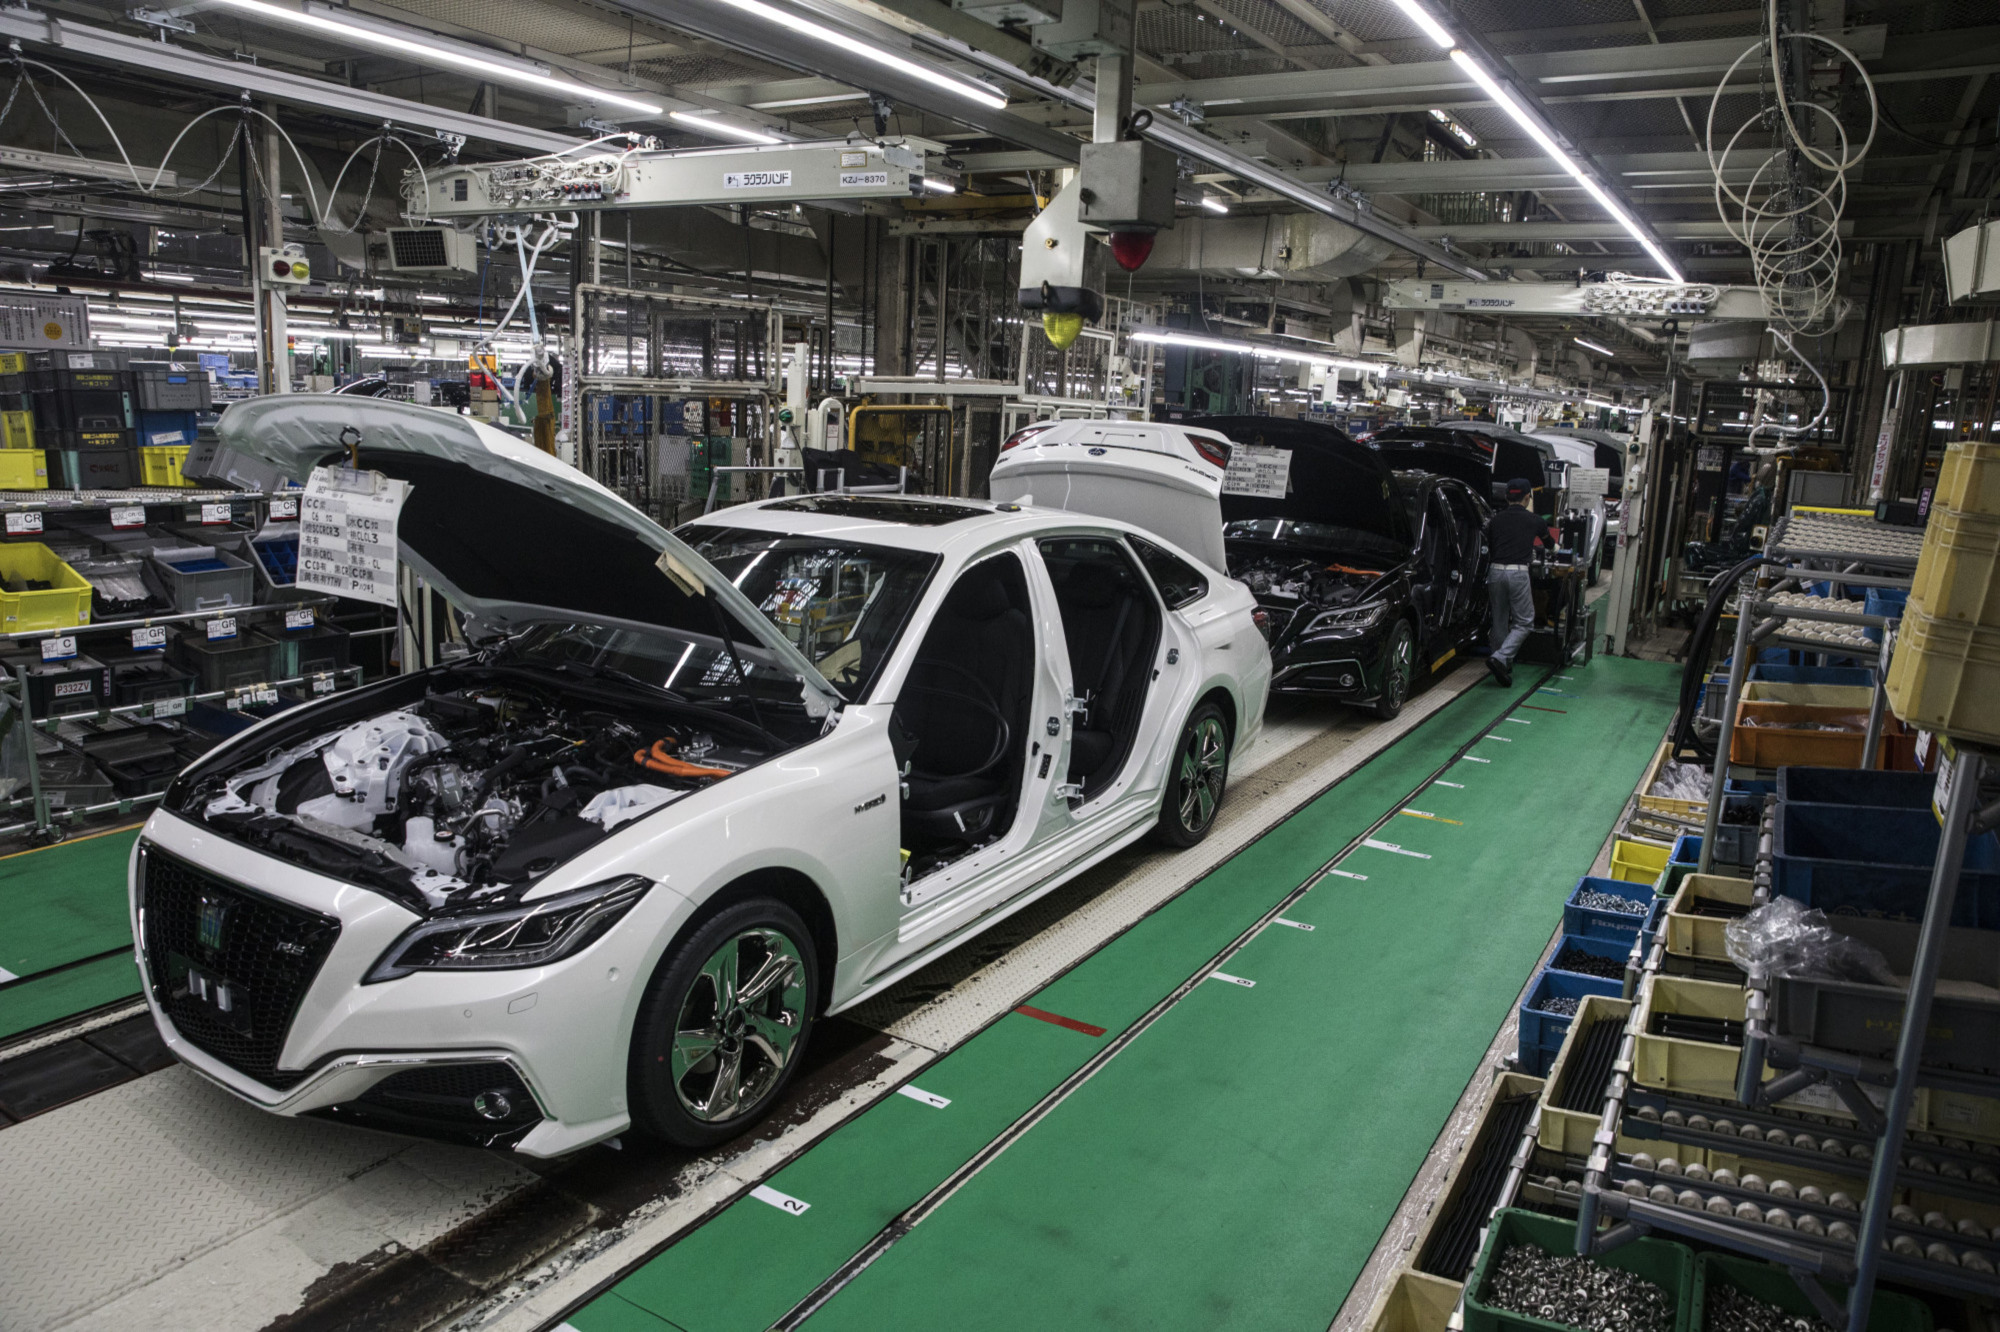 Crown sedans move along the assembly line at the Toyota Motor Corp. Motomachi plant in Toyota, Aichi Prefecture. | BLOOMBERG